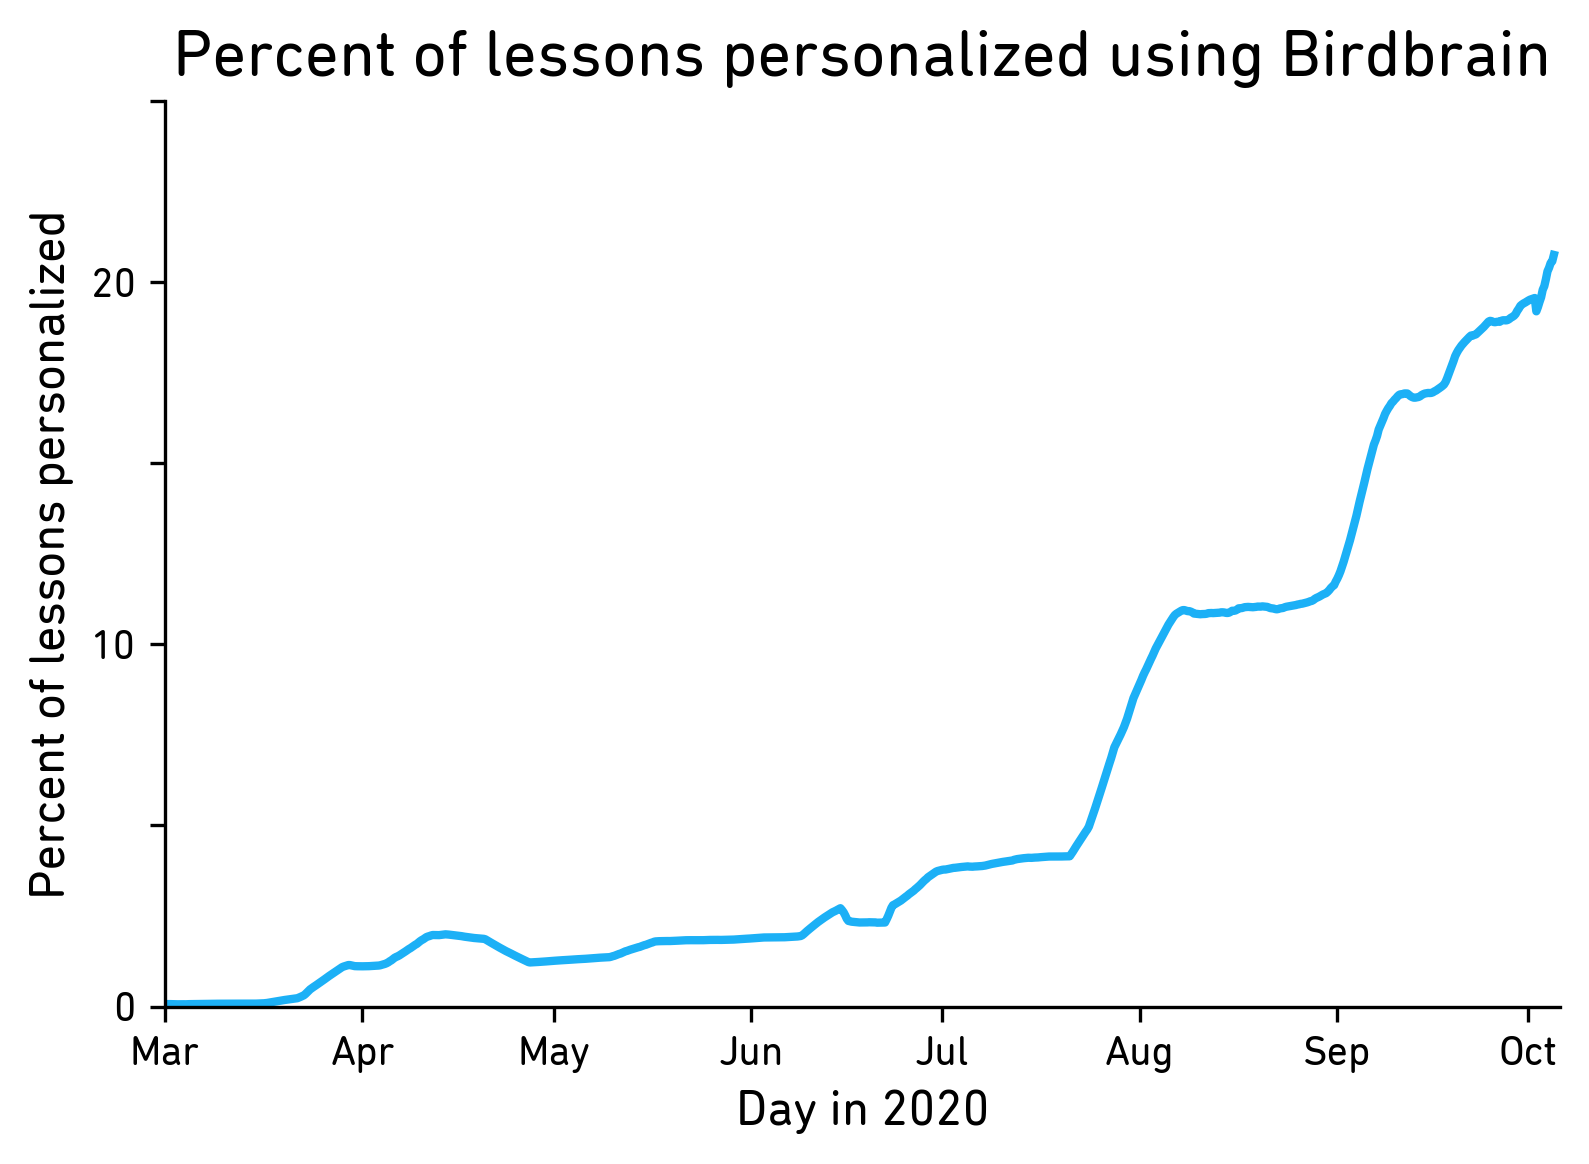 graph with y-axis for percent of lessons personalized and x-axis for days since March 2020, the line starts low at 0% and gradually increases to about 5% in July and then spikes until it's over 20% in October